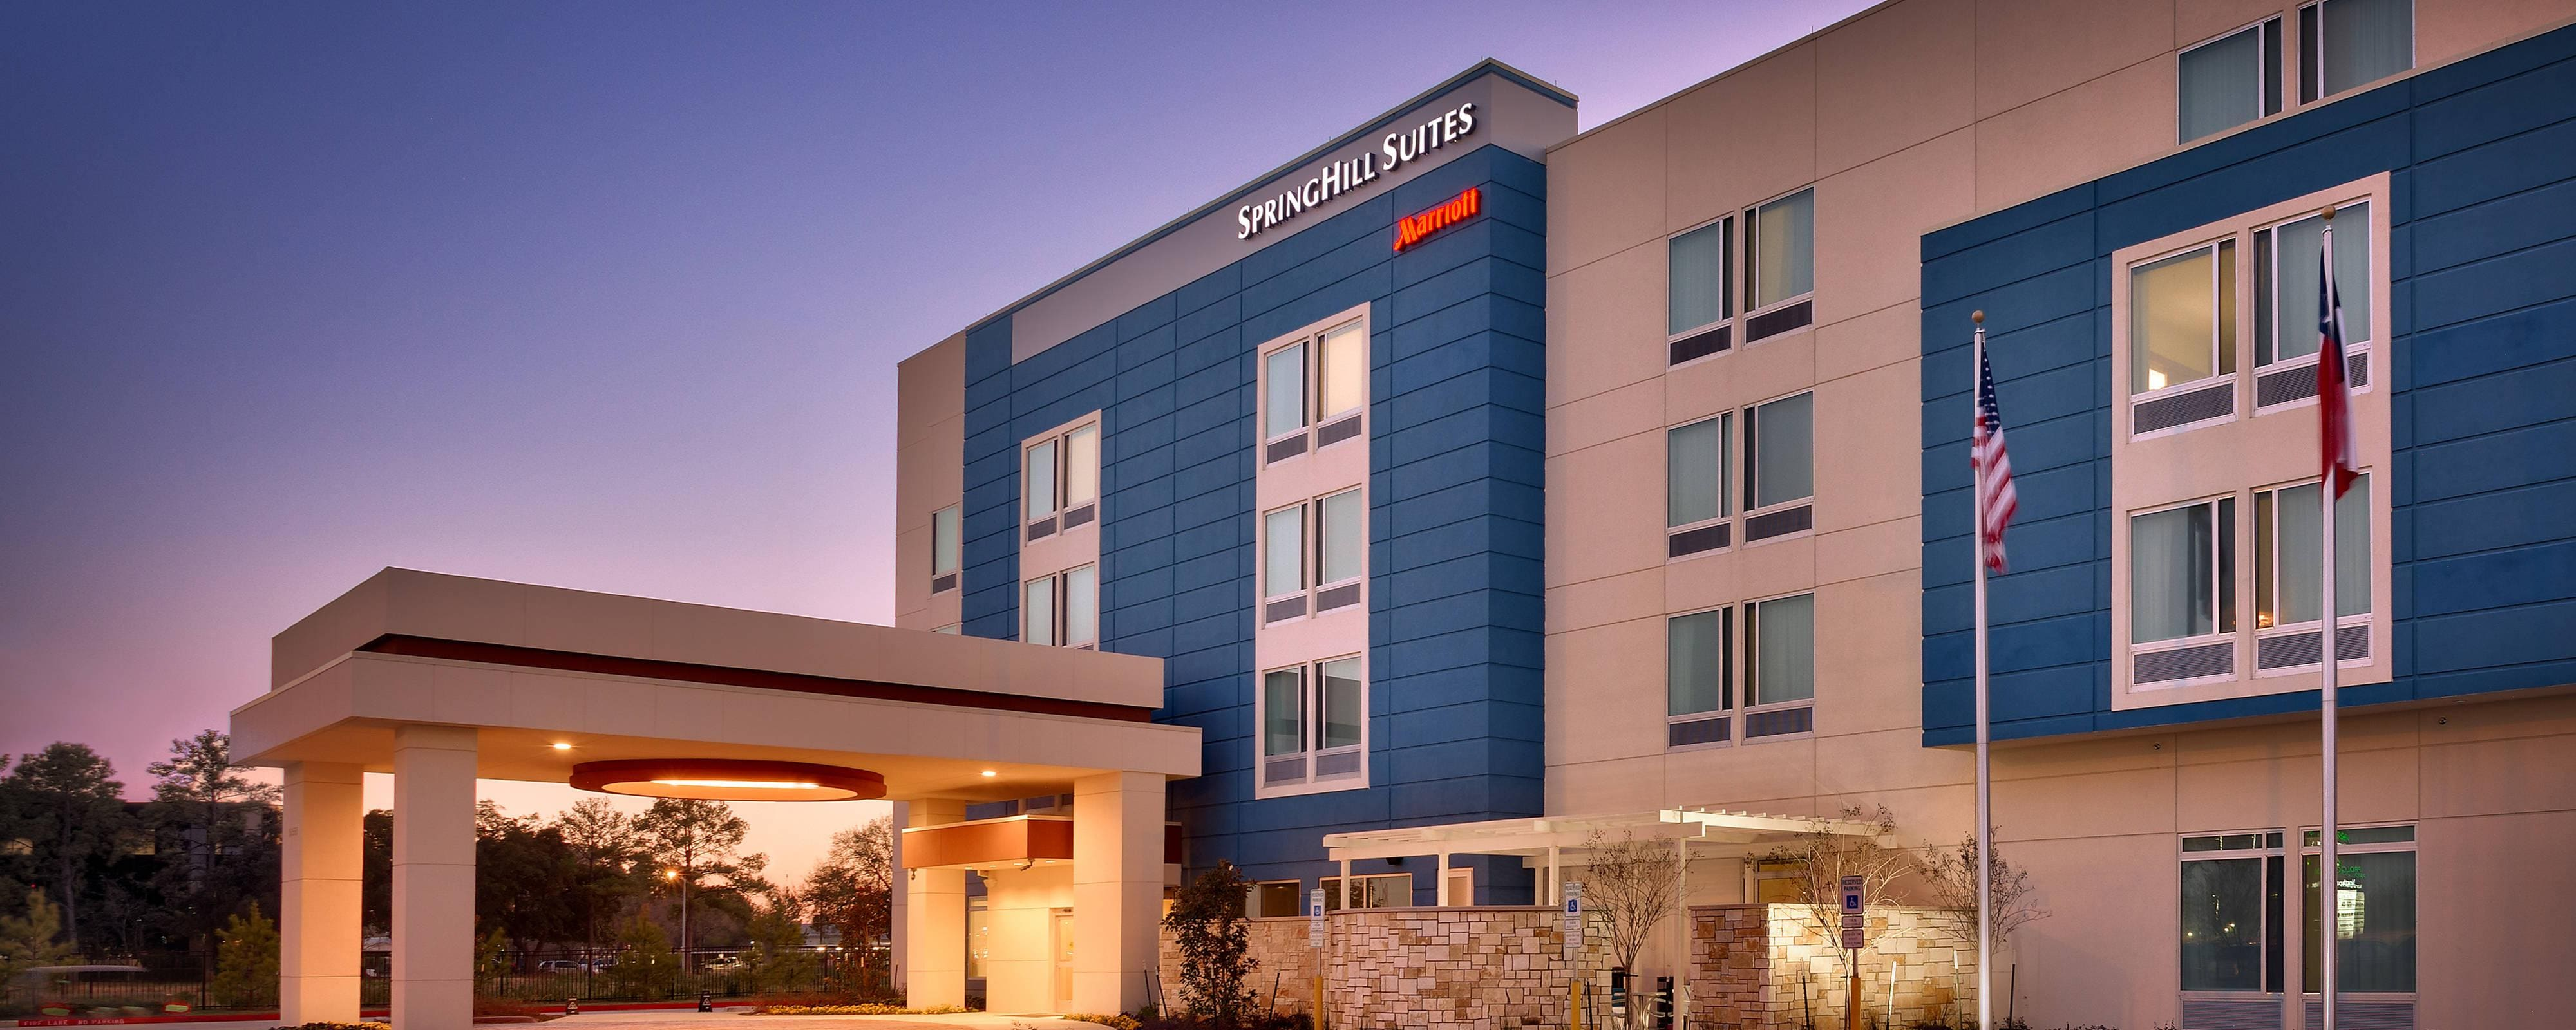 Fachada del SpringHill Suites Houston I-45 North